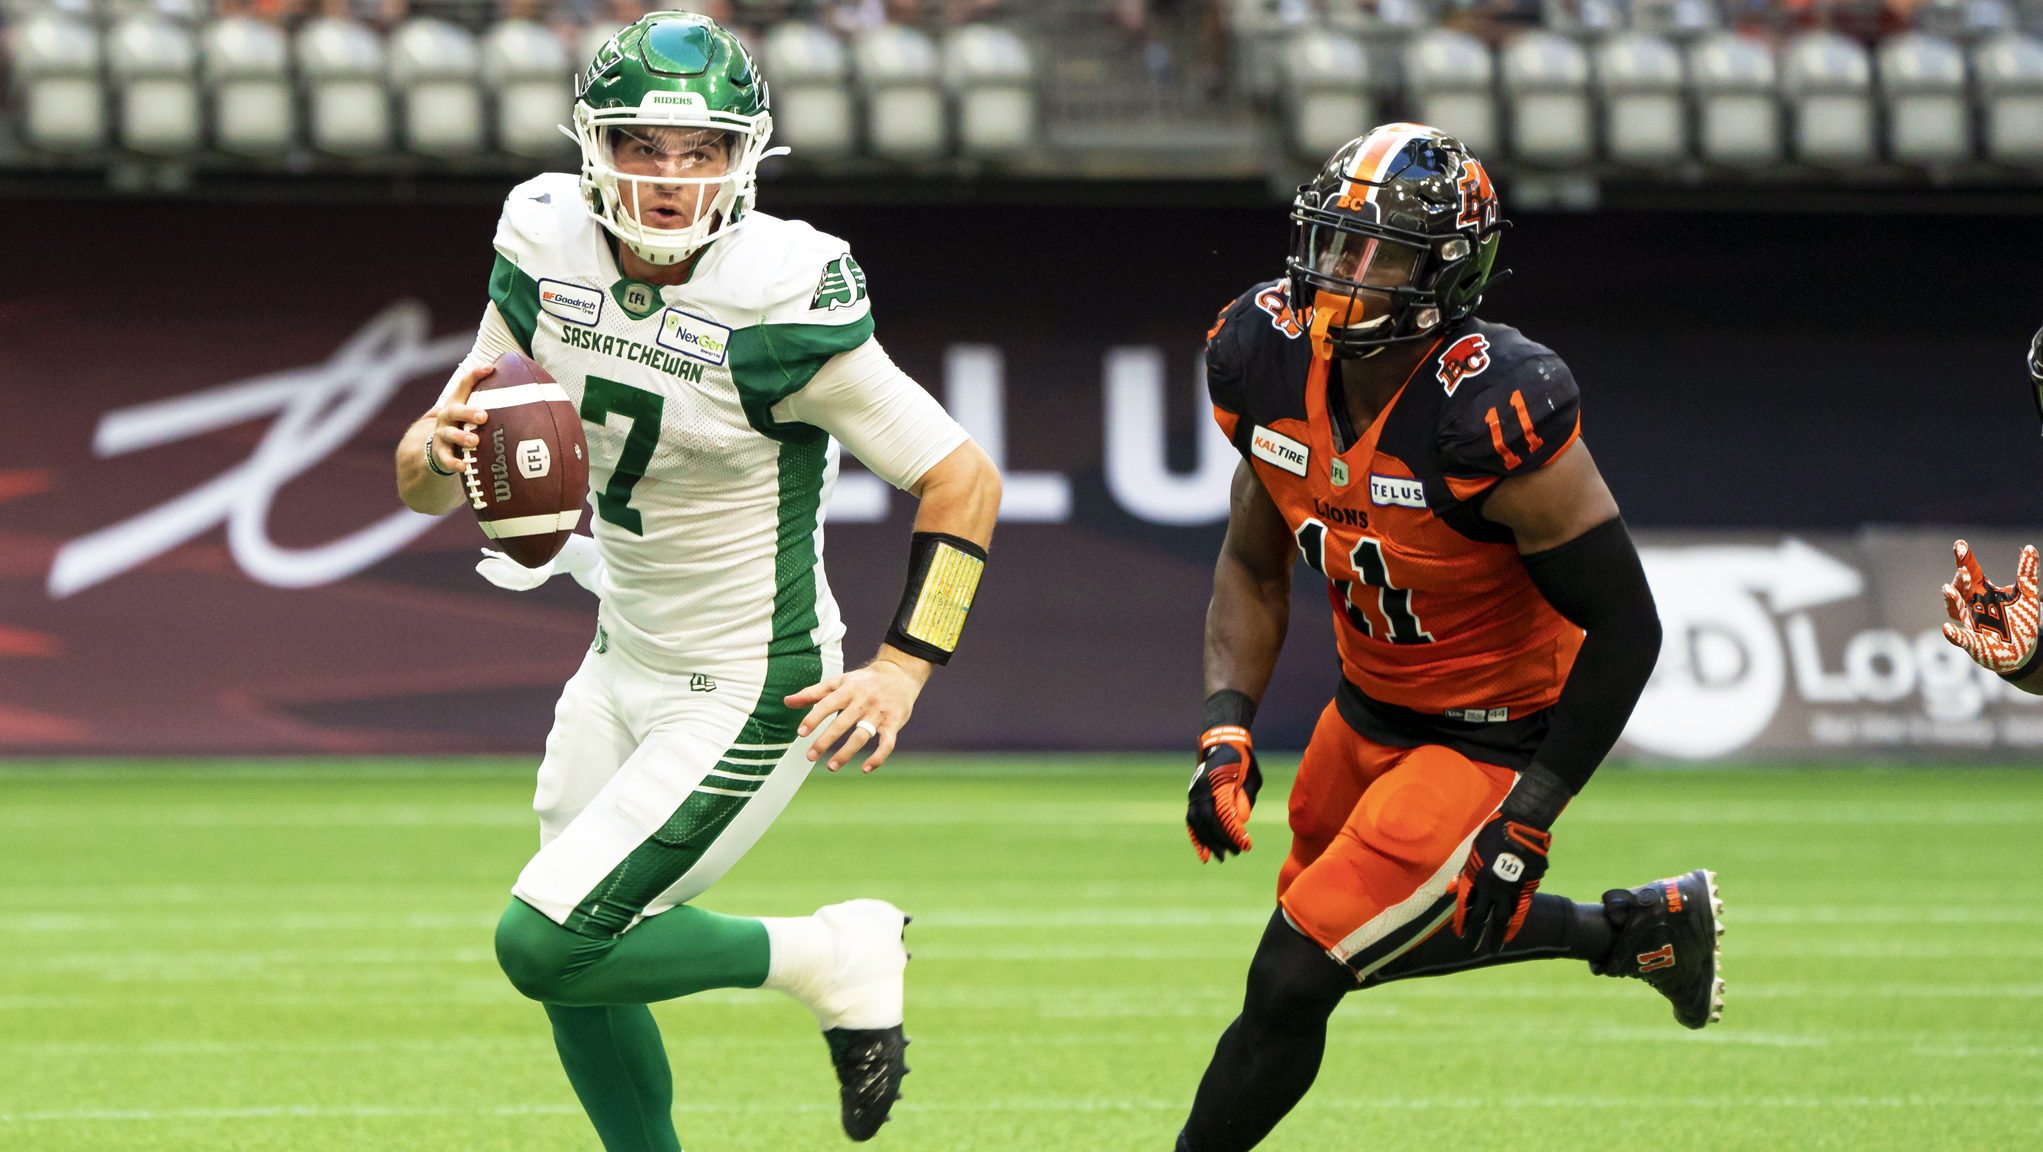 Dickenson: We definitely need to play our best to beat Lions - CFL.ca